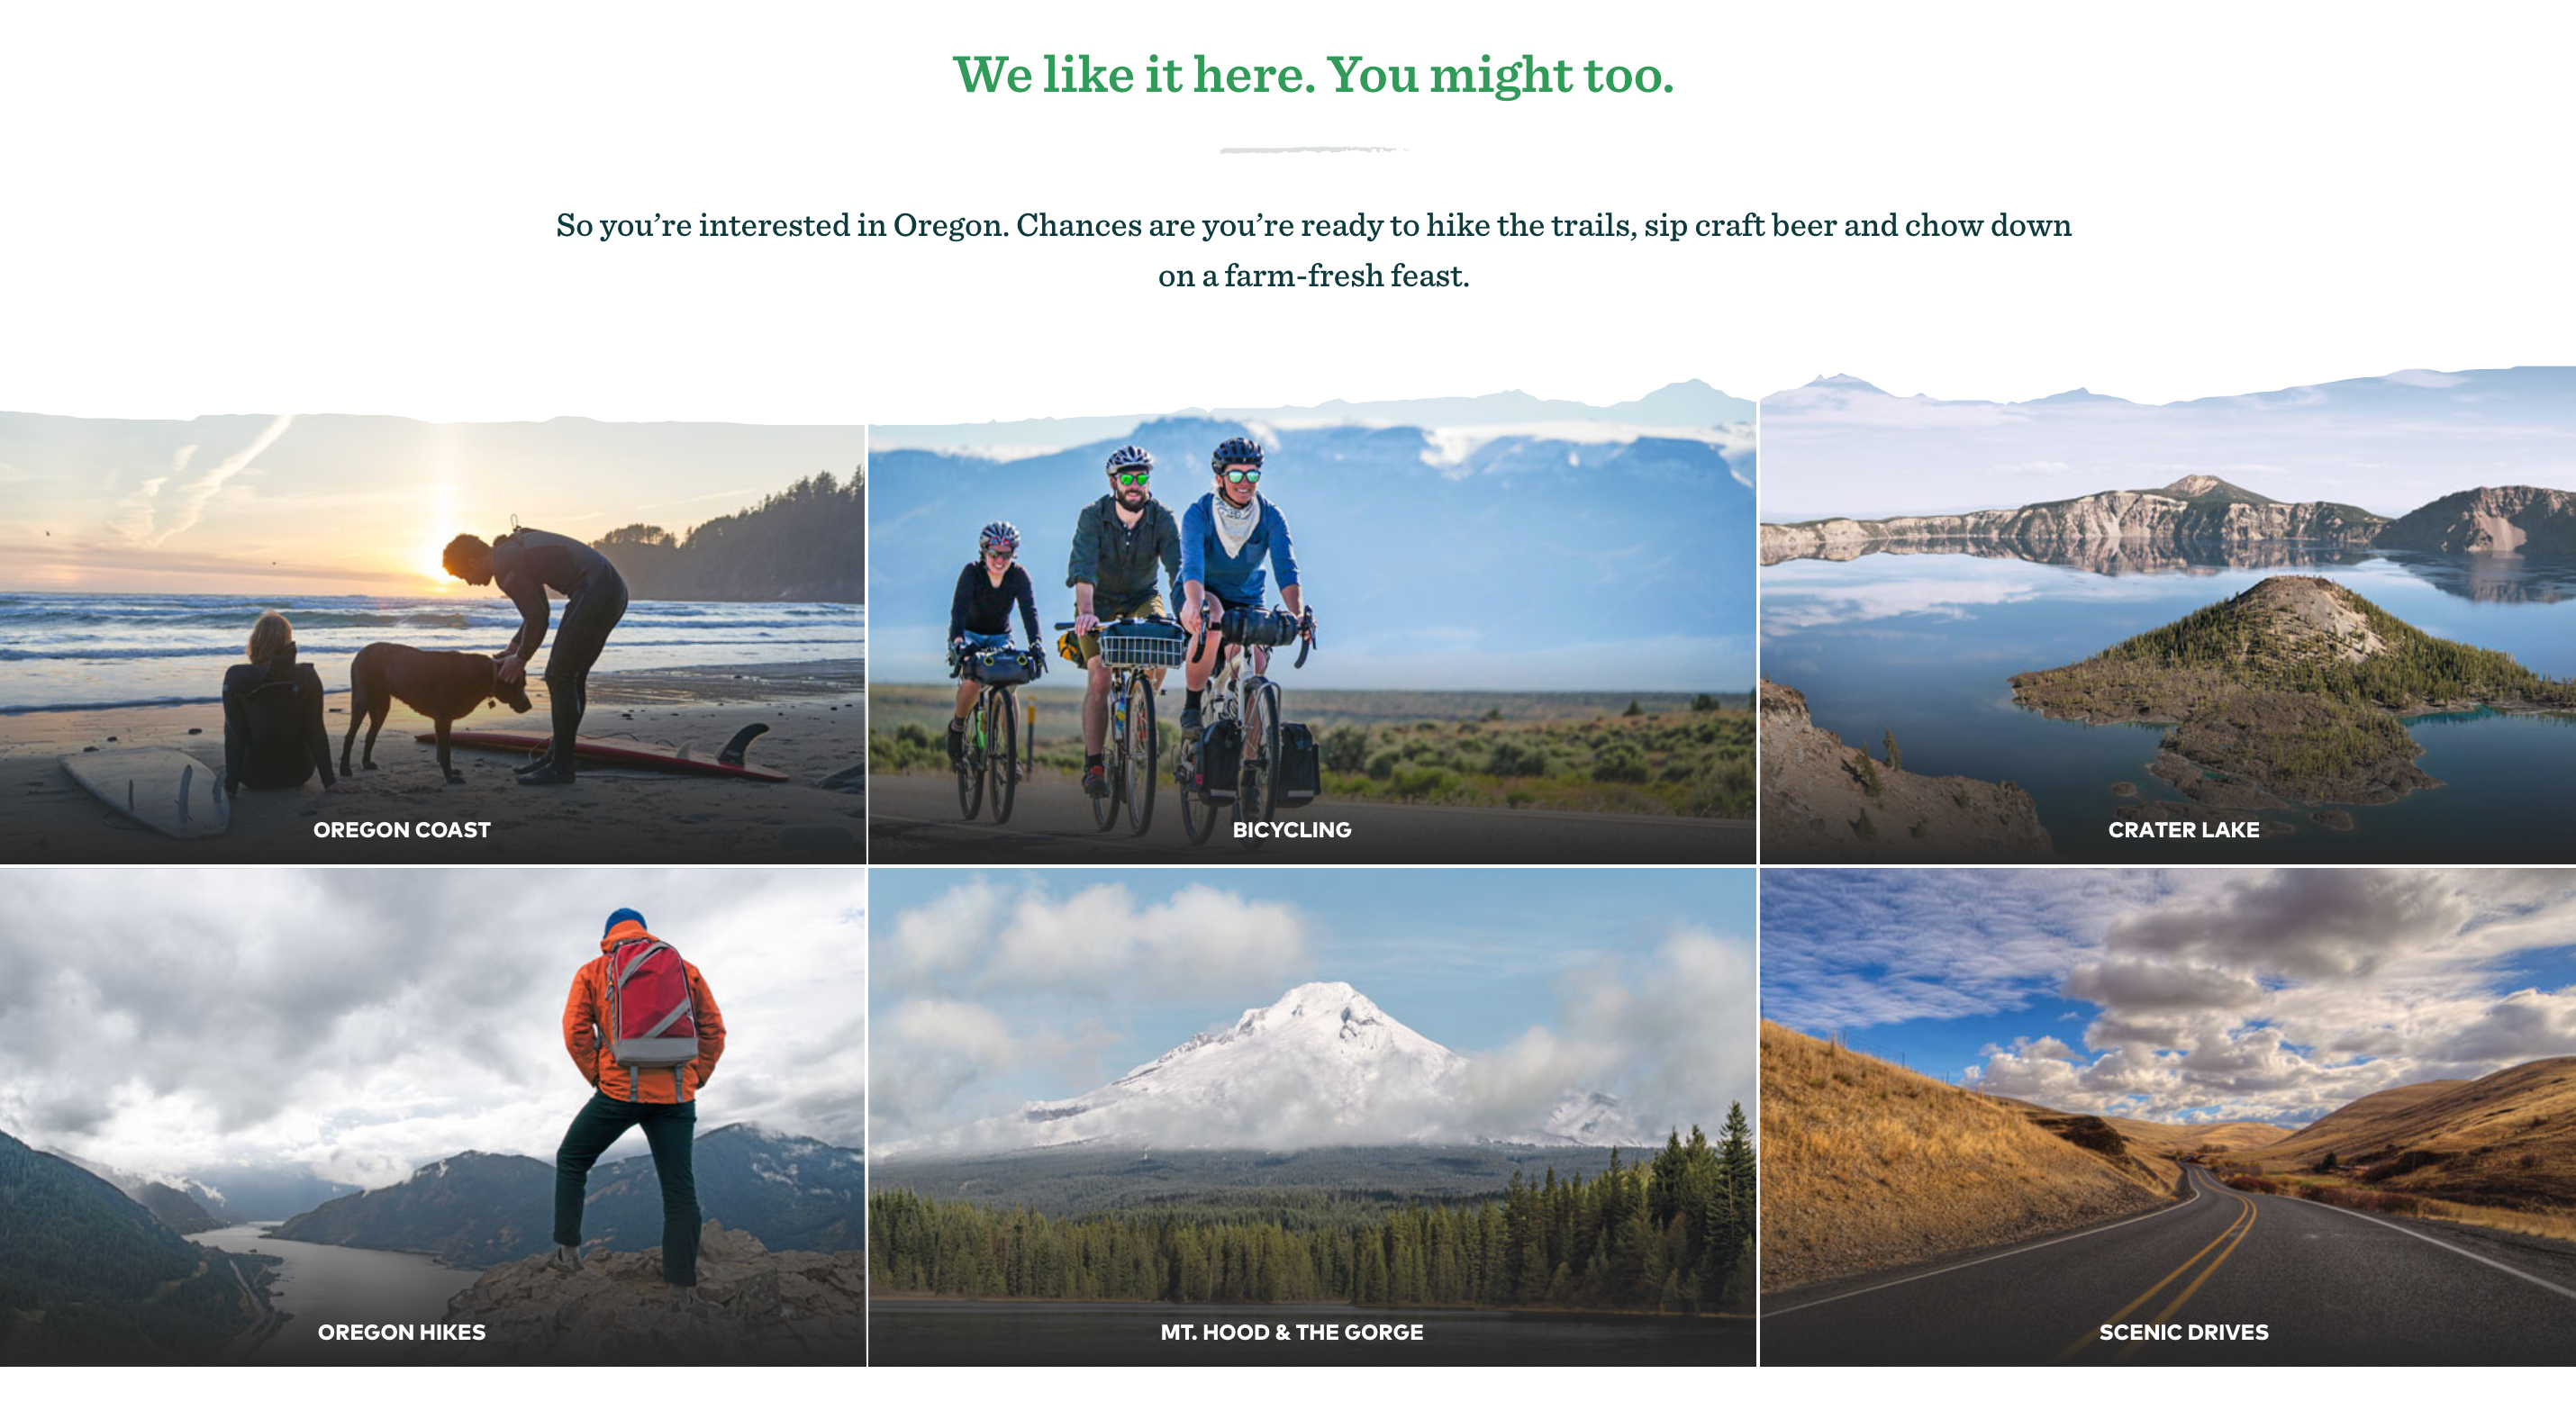 Image: Grid of Oregon locations and activities across the state